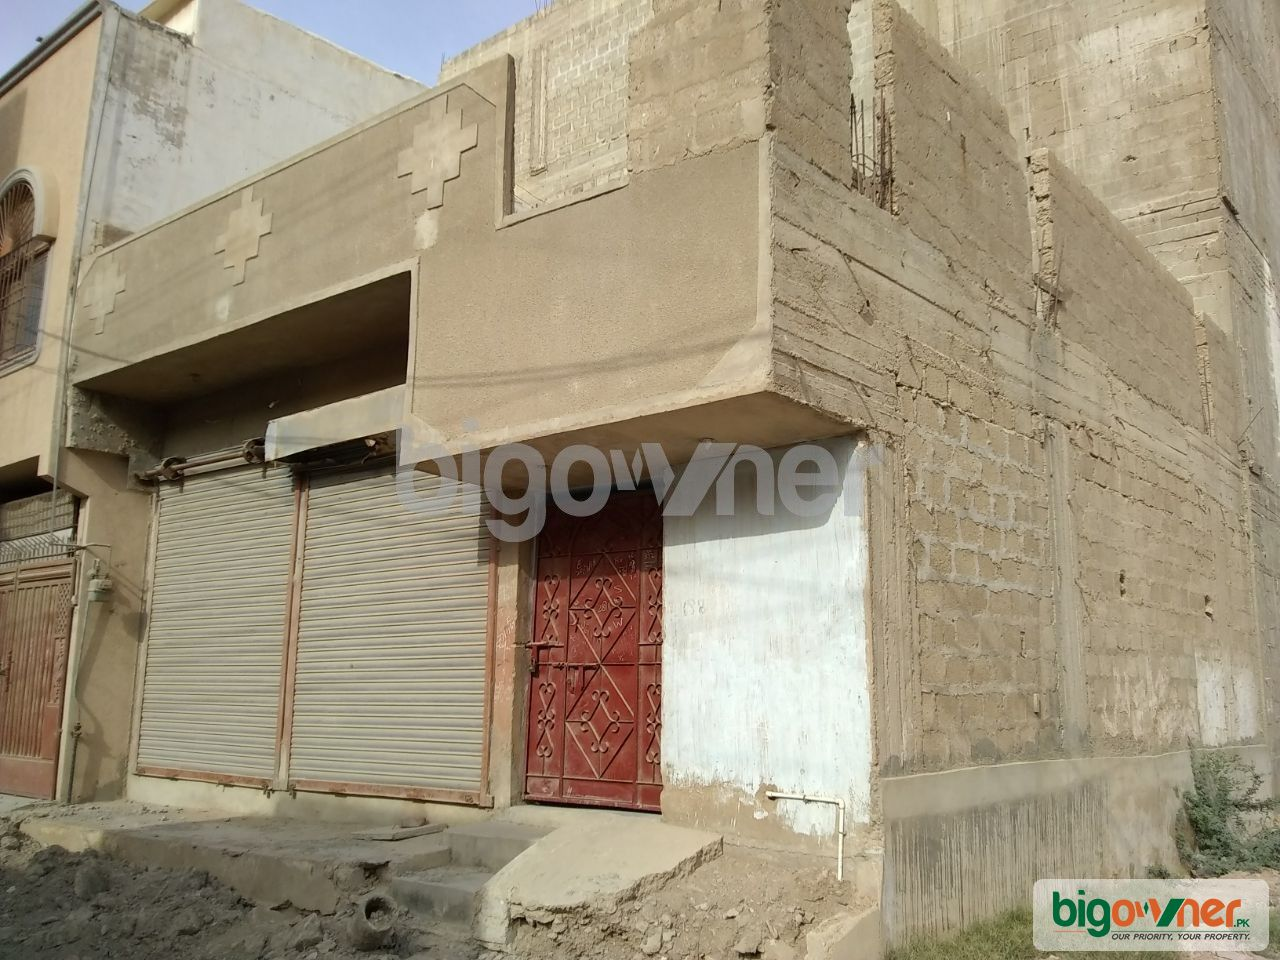 Commercial property for sale in dina pakistan